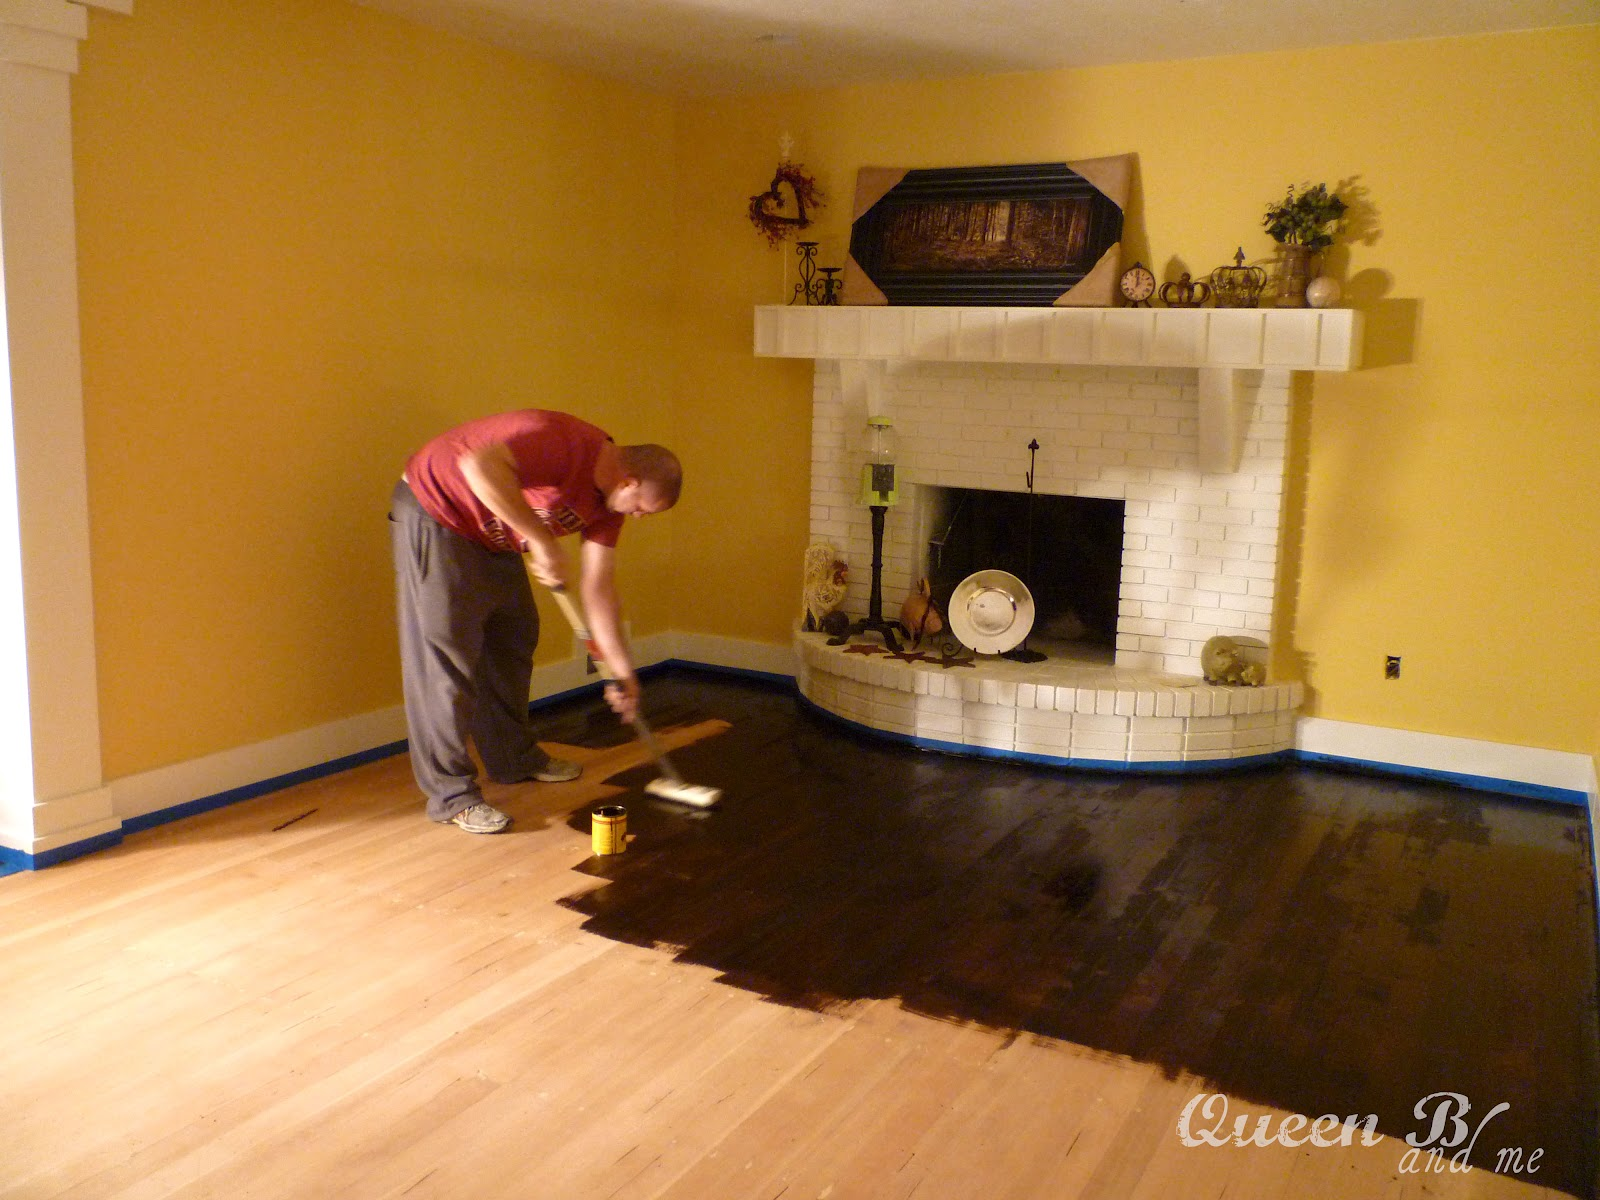 How To Refinish Hardwood Floors! They Look So Good!! Great Tips!